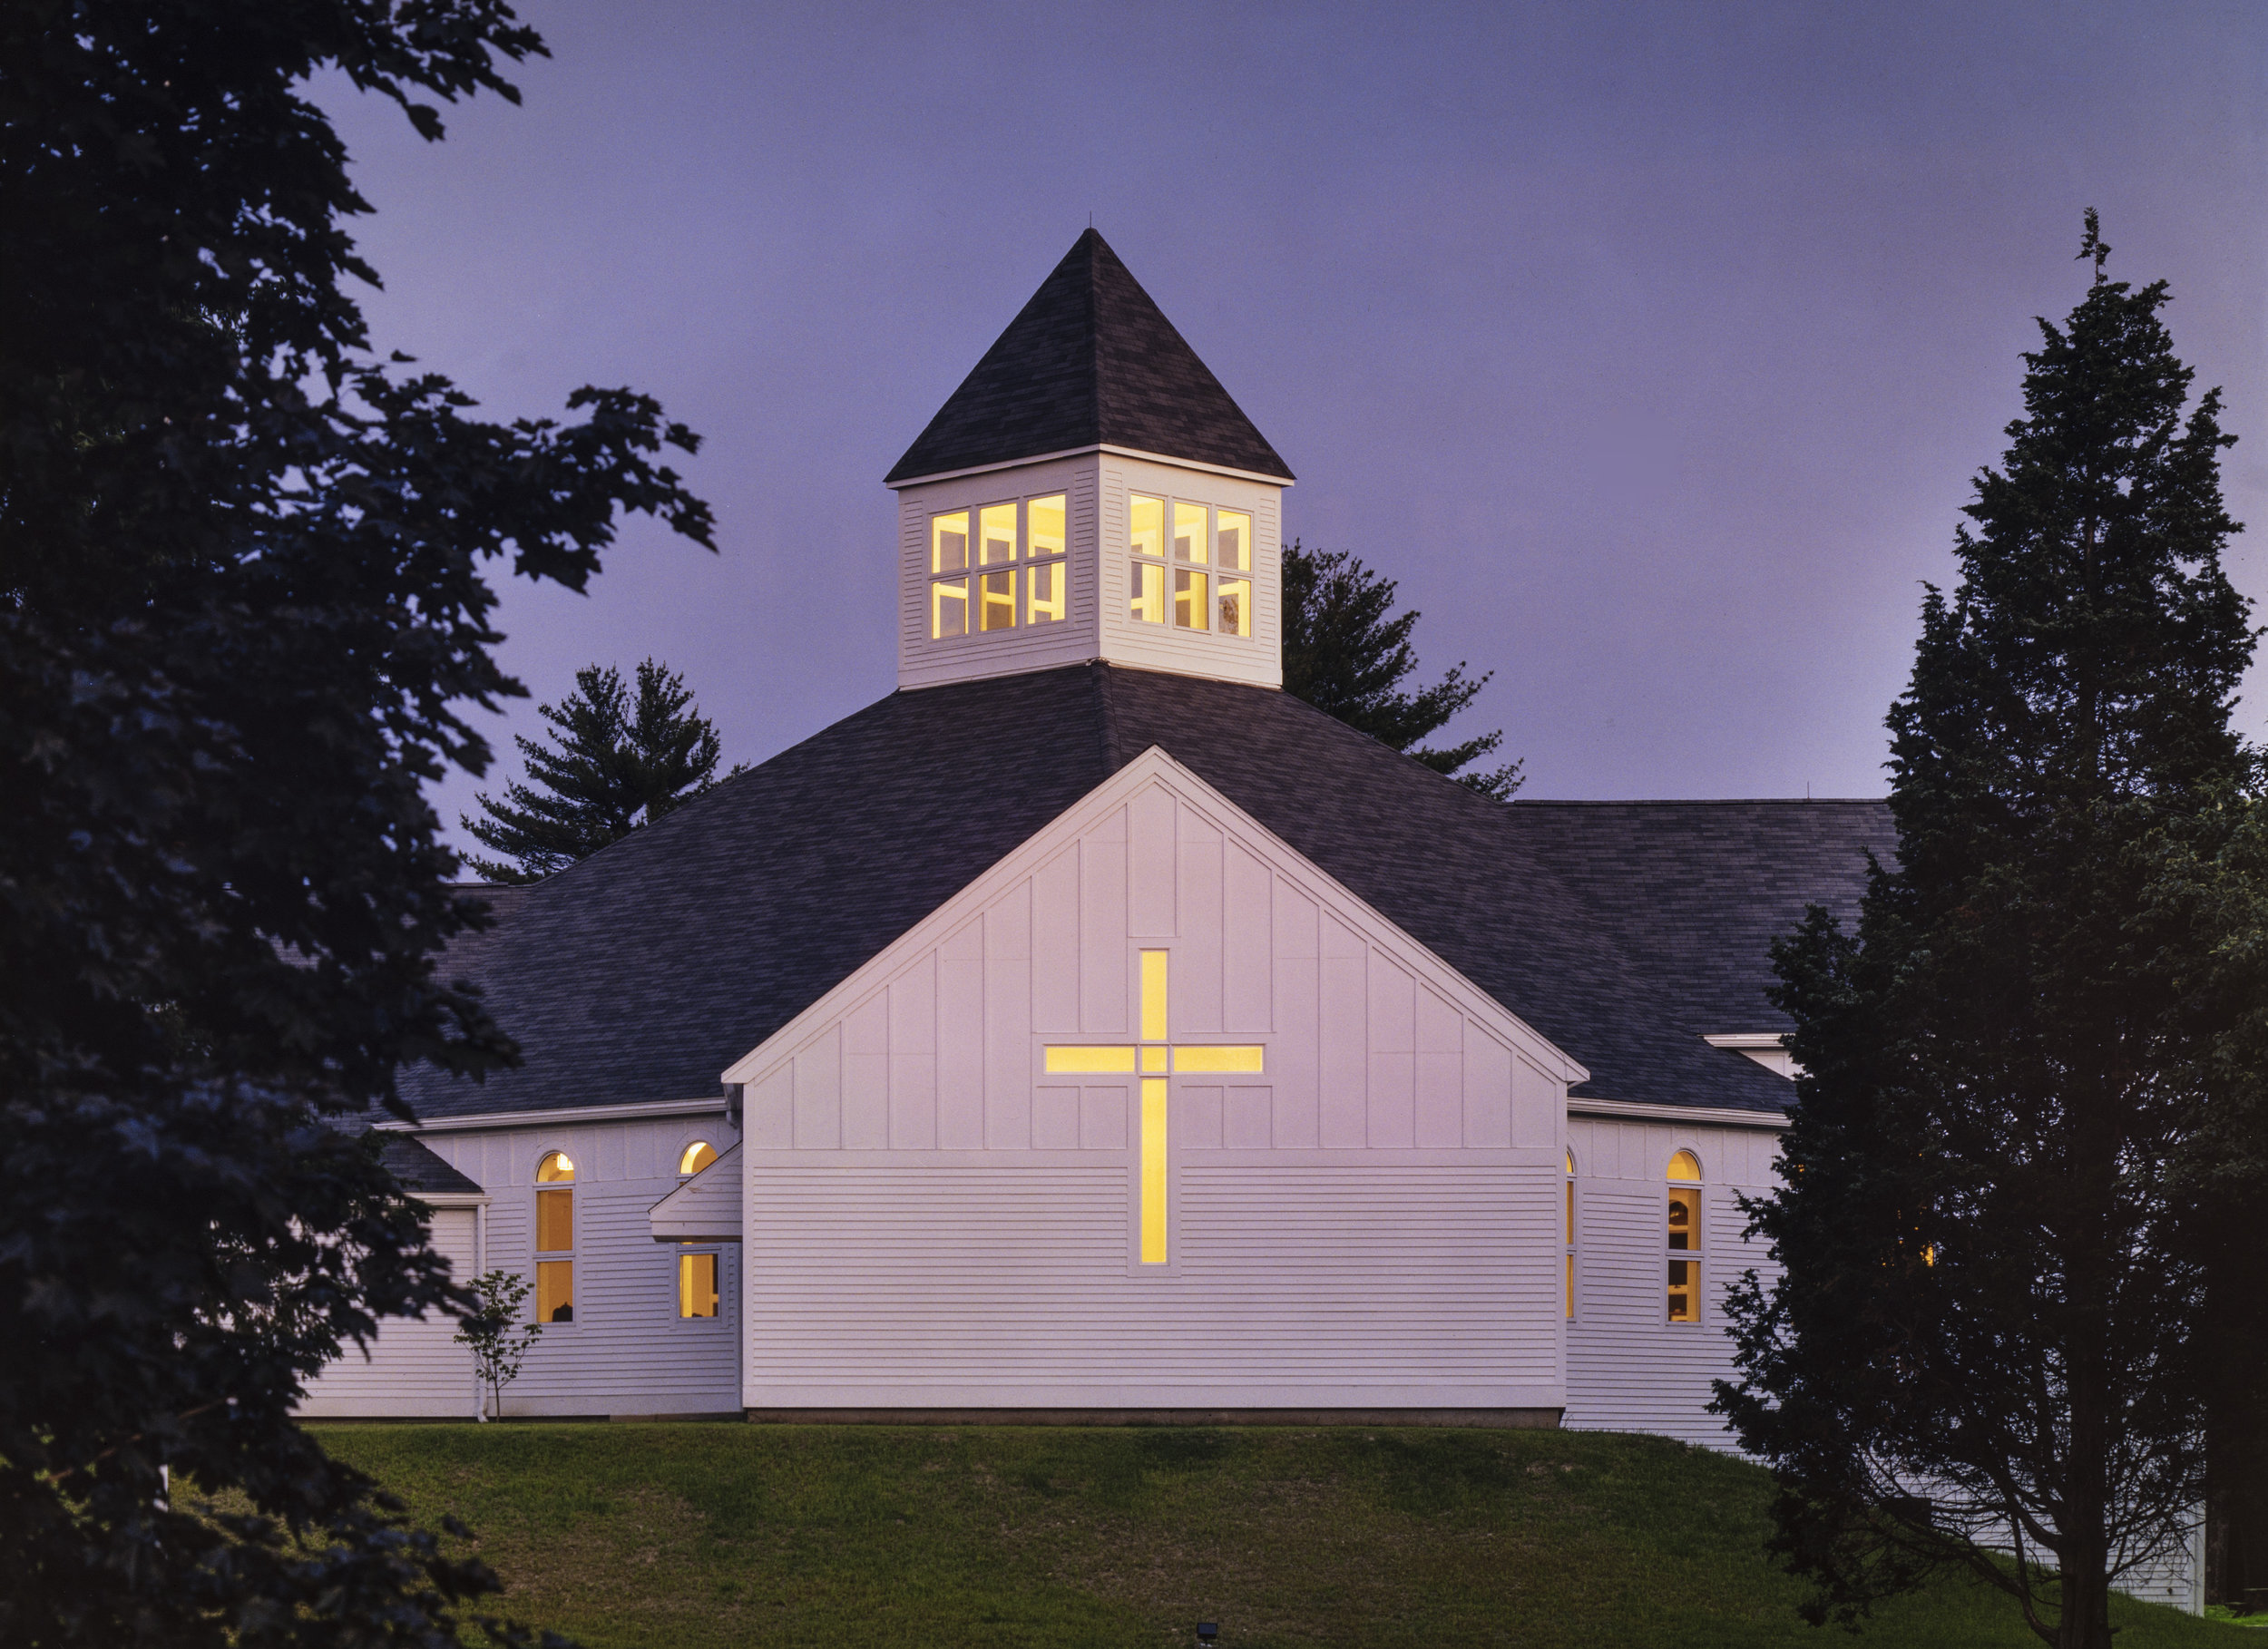 Christ_Church_ext_dusk_hiRes.jpg